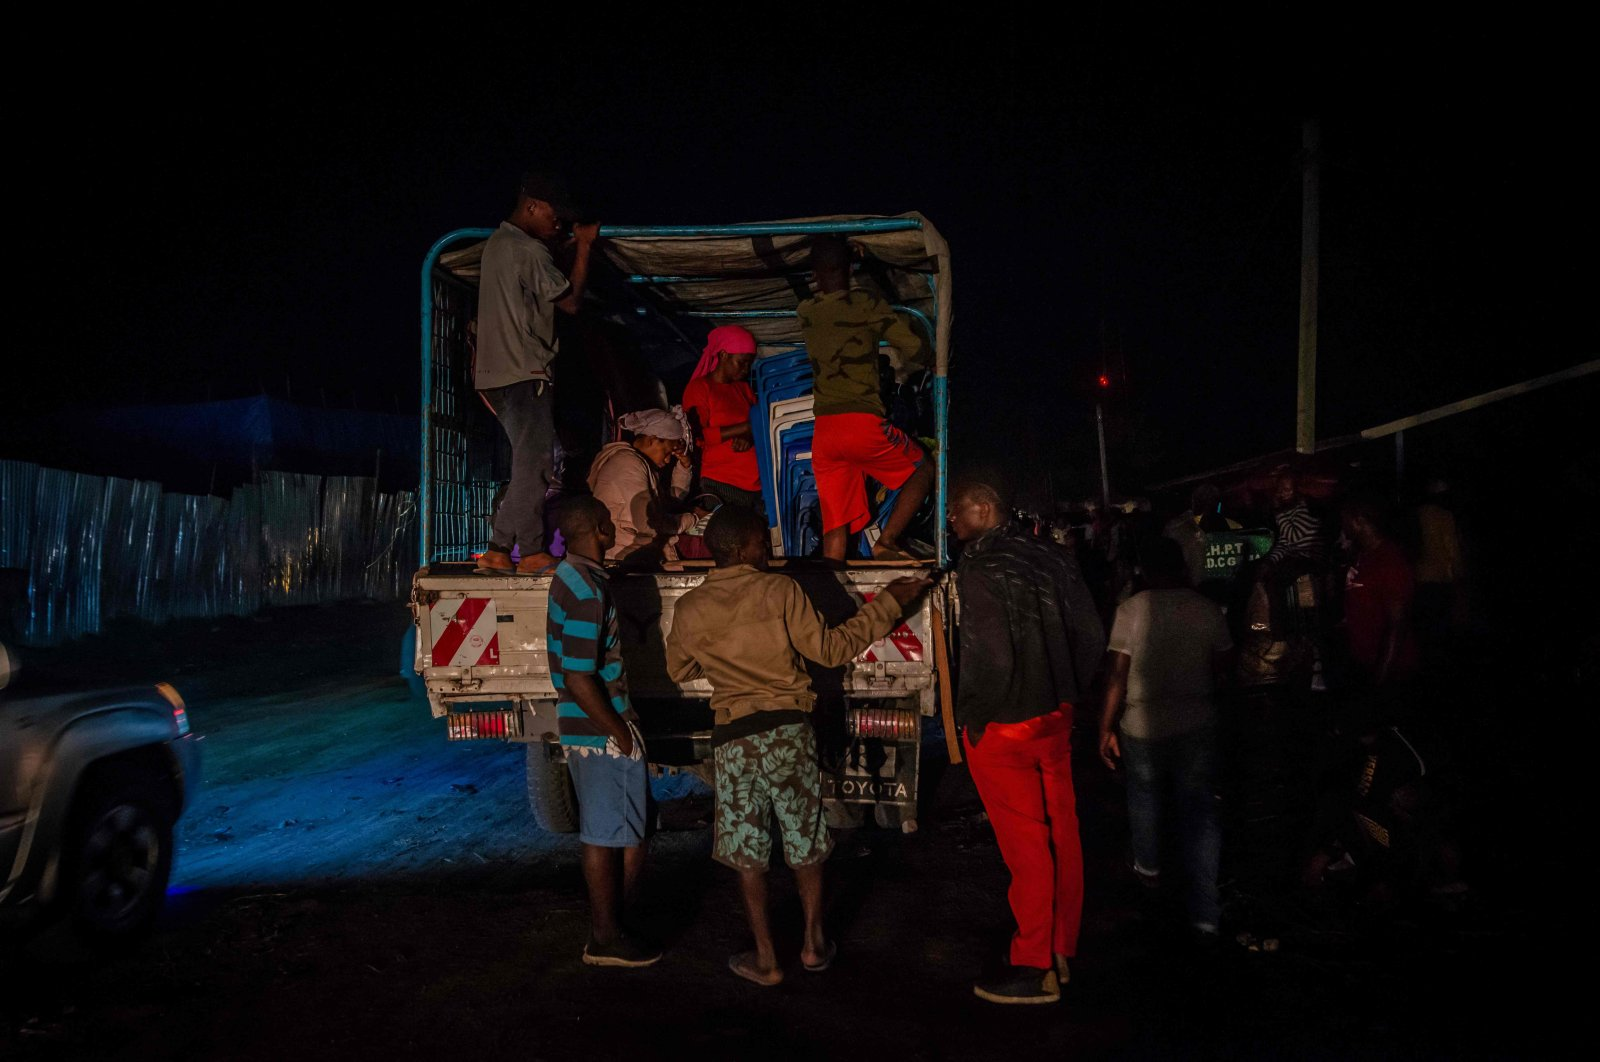 Goma residents arrive in Sake, 25 kilometers Nort-West of Goma, where they fled after the local authorities ordered the population to evacuate the city, Sake, Democratic Republic of Congo, May 27, 2021. (AFP Photo)